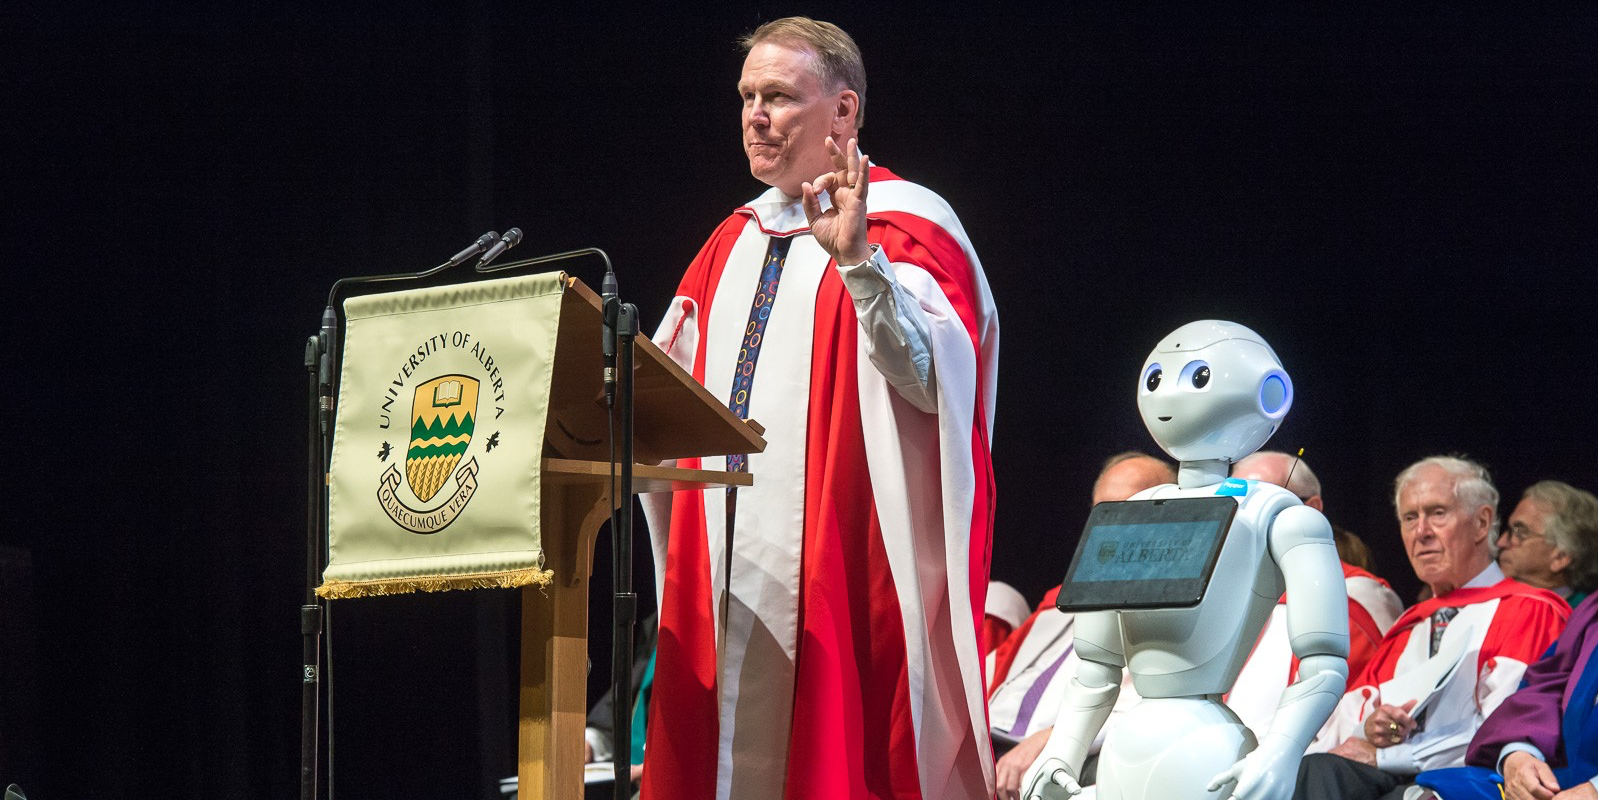 Dave Mowat, president and CEO of ATB Financial, is joined on stage by Pepper the robot after receiving his honorary doctor of laws degree June 7. (Photo by Richard Siemens)